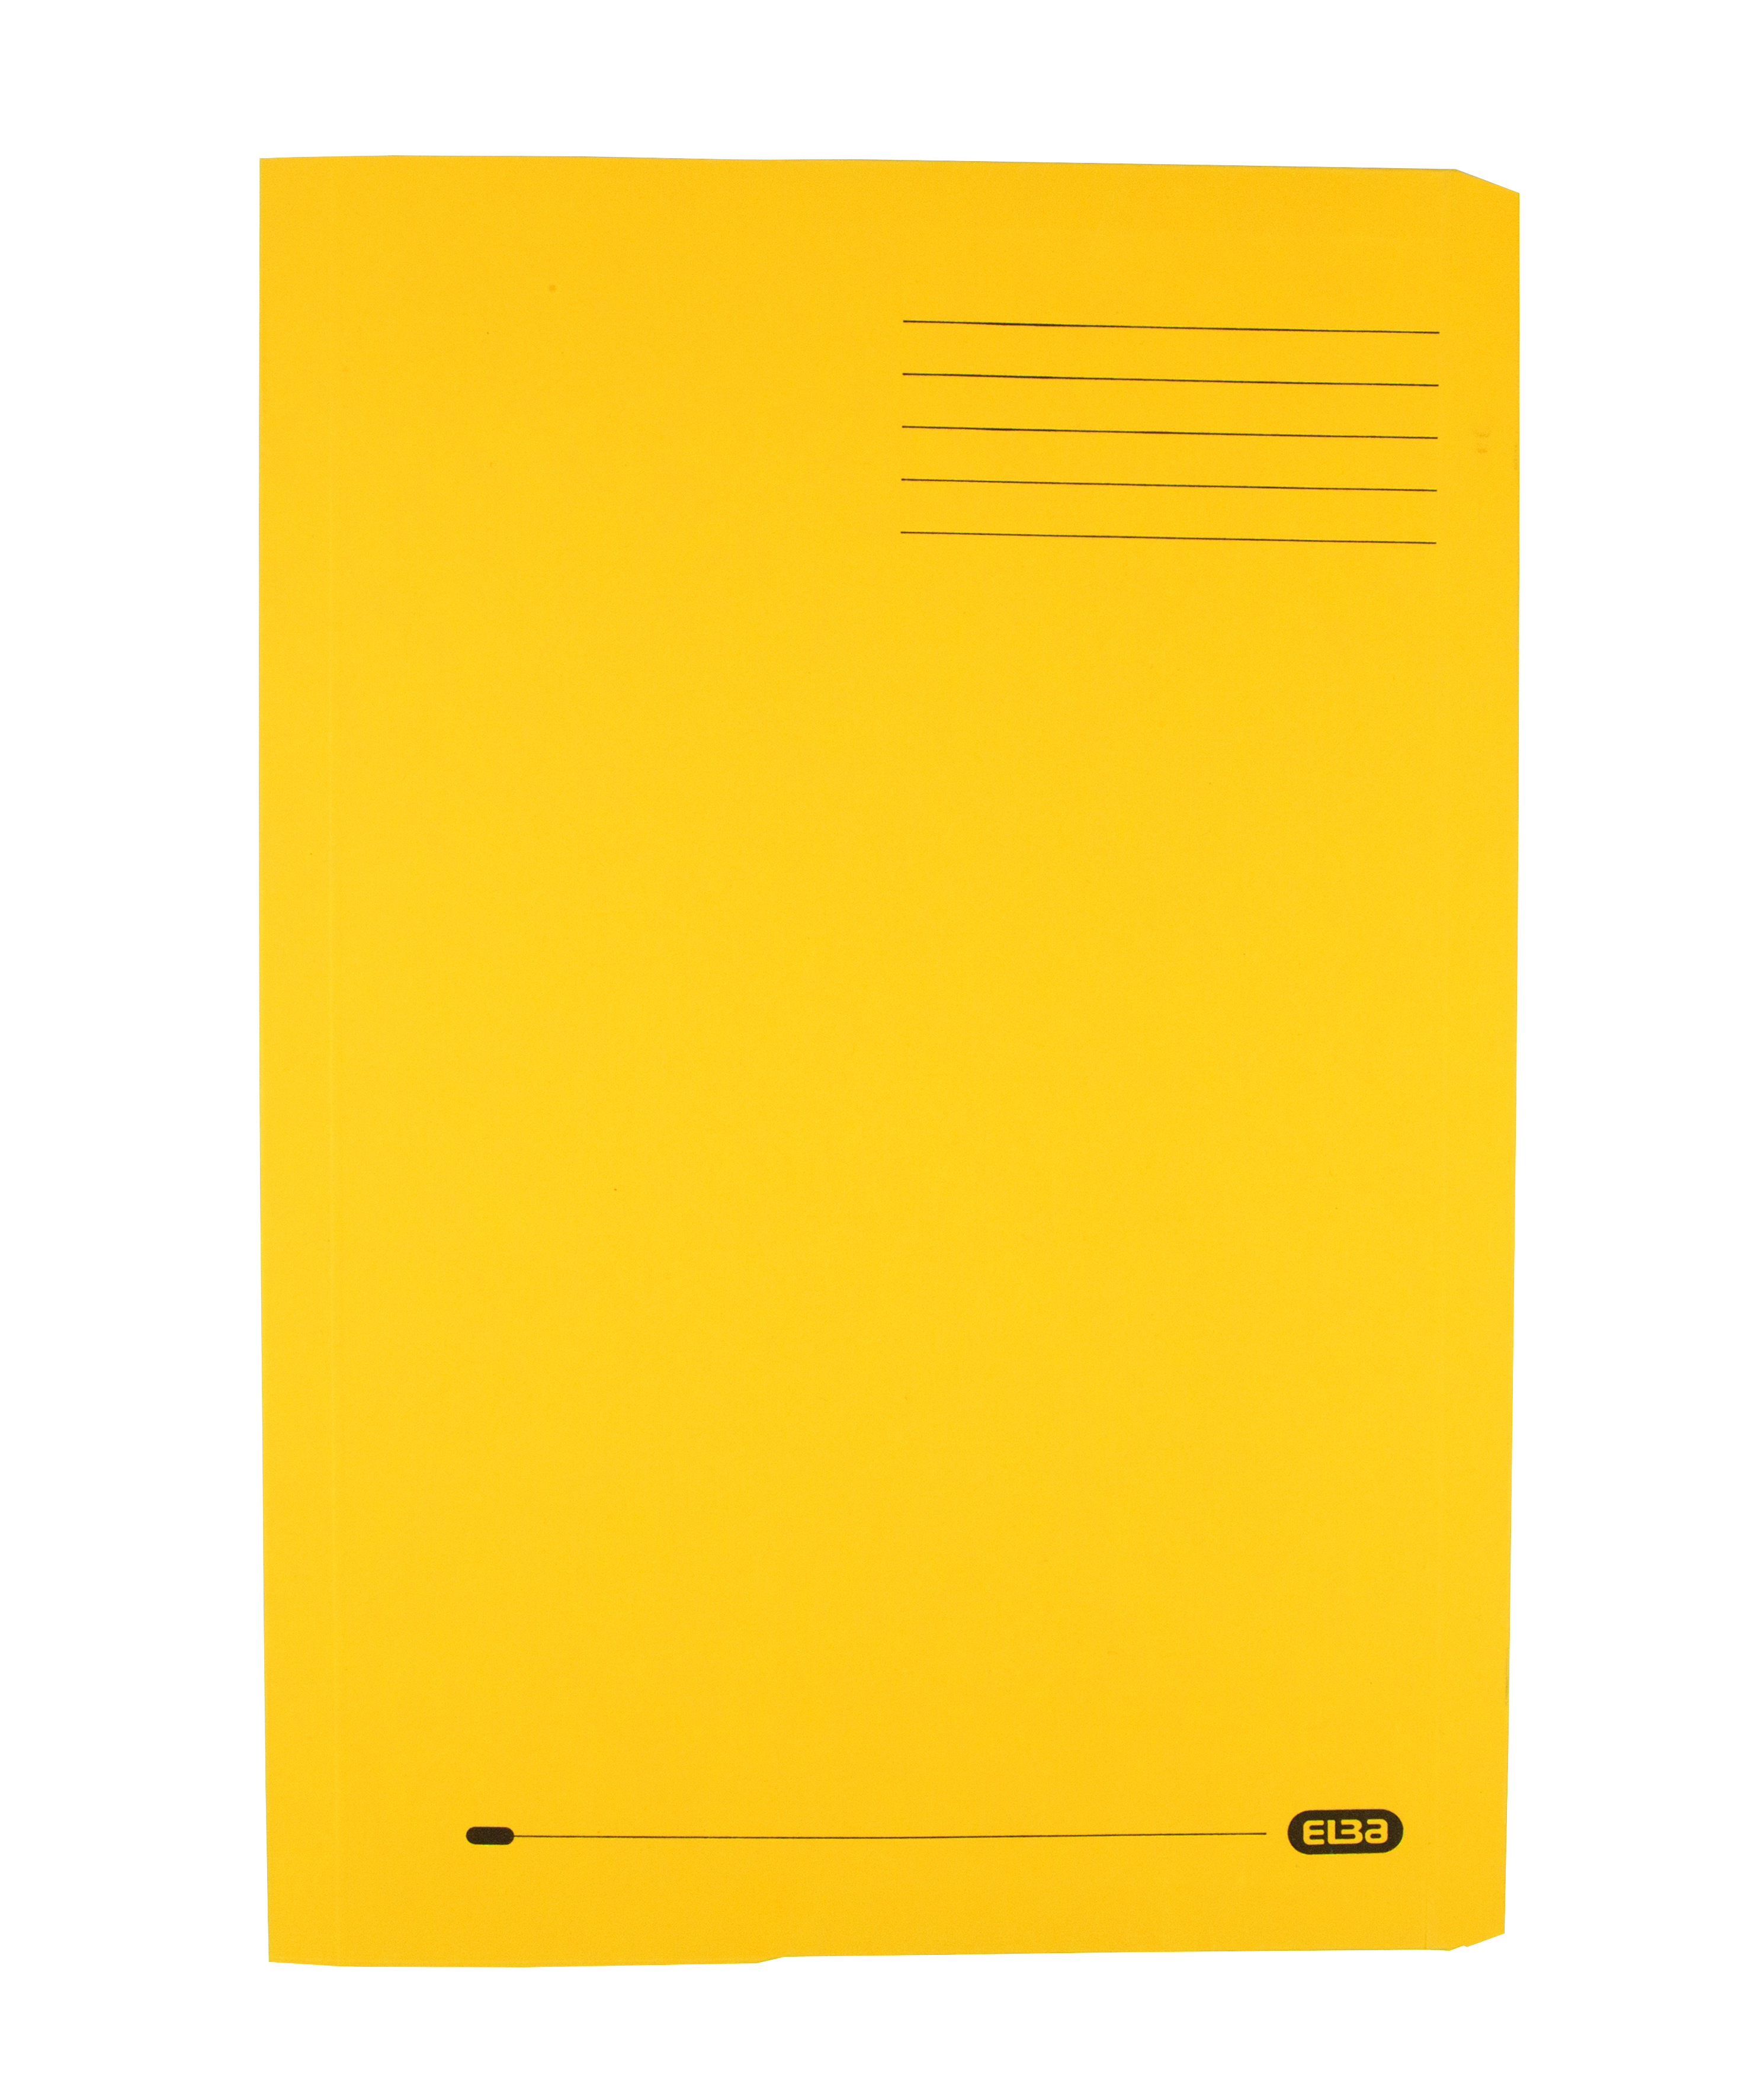 Elba Clifton Flat Bar Pocket (Rear) File 285gsm Capacity 50mm Foolscap Yellow Ref 100090180 [Pack 25]